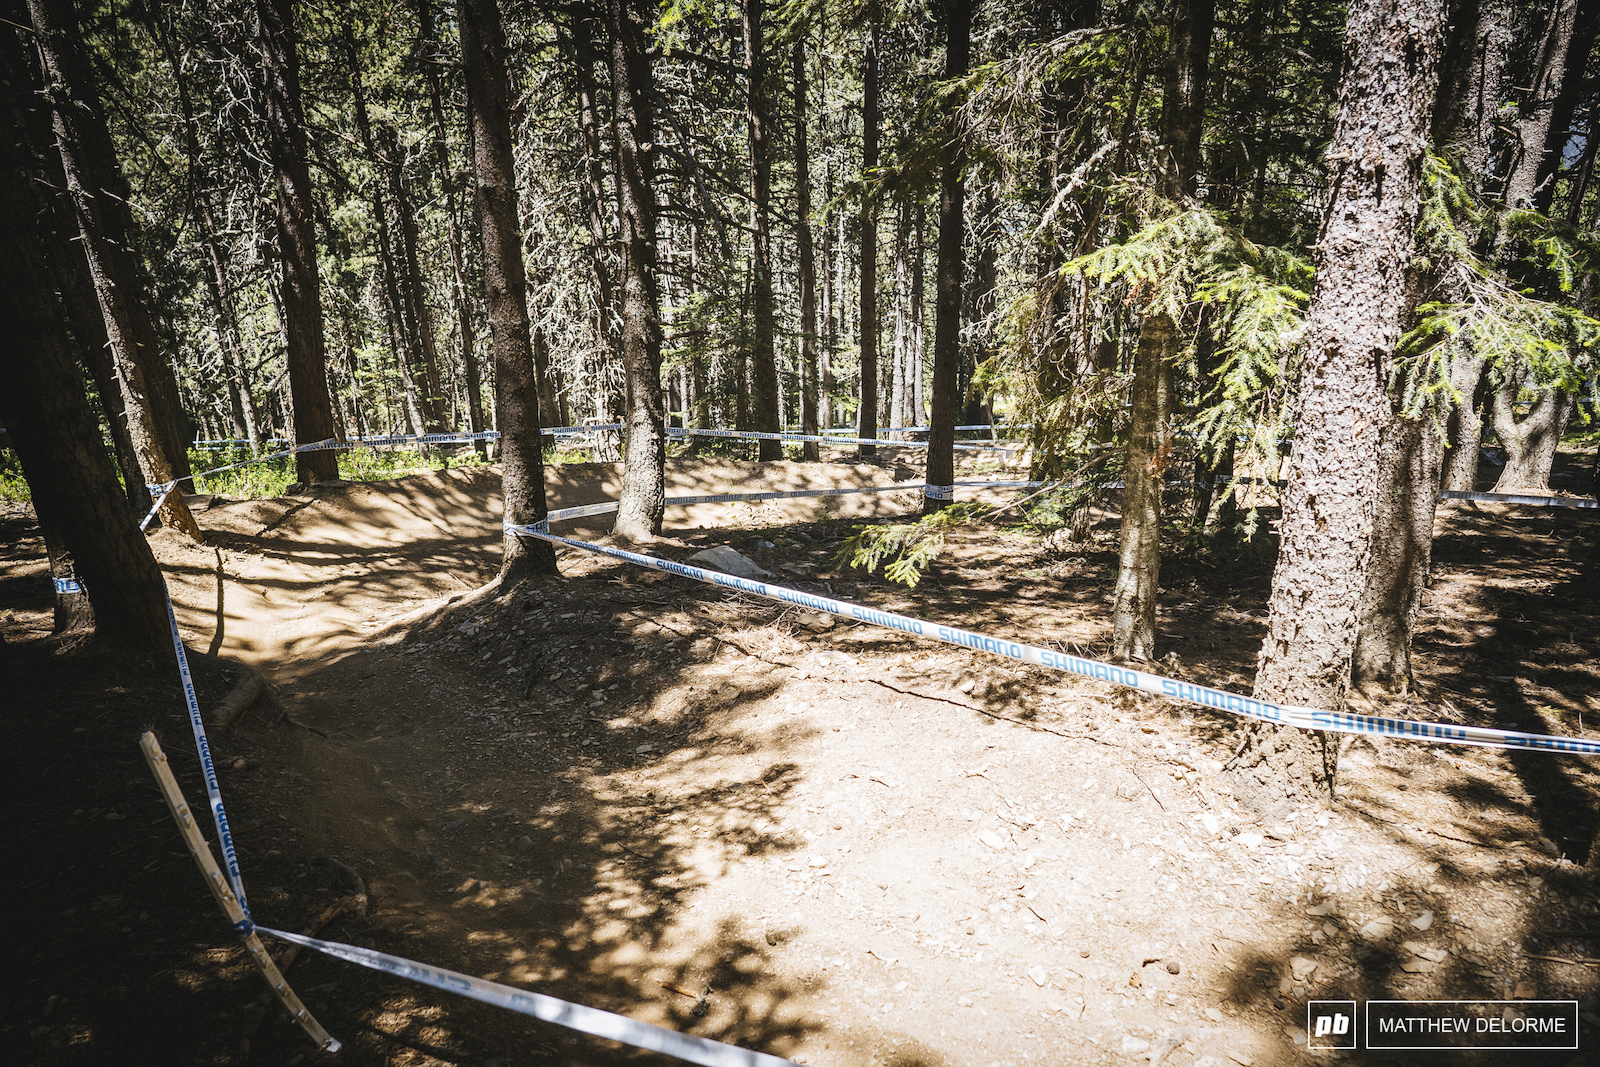 The back side of the track has a bit of bike park feel. Nice berms and a couple doubles just to keep it interesting.